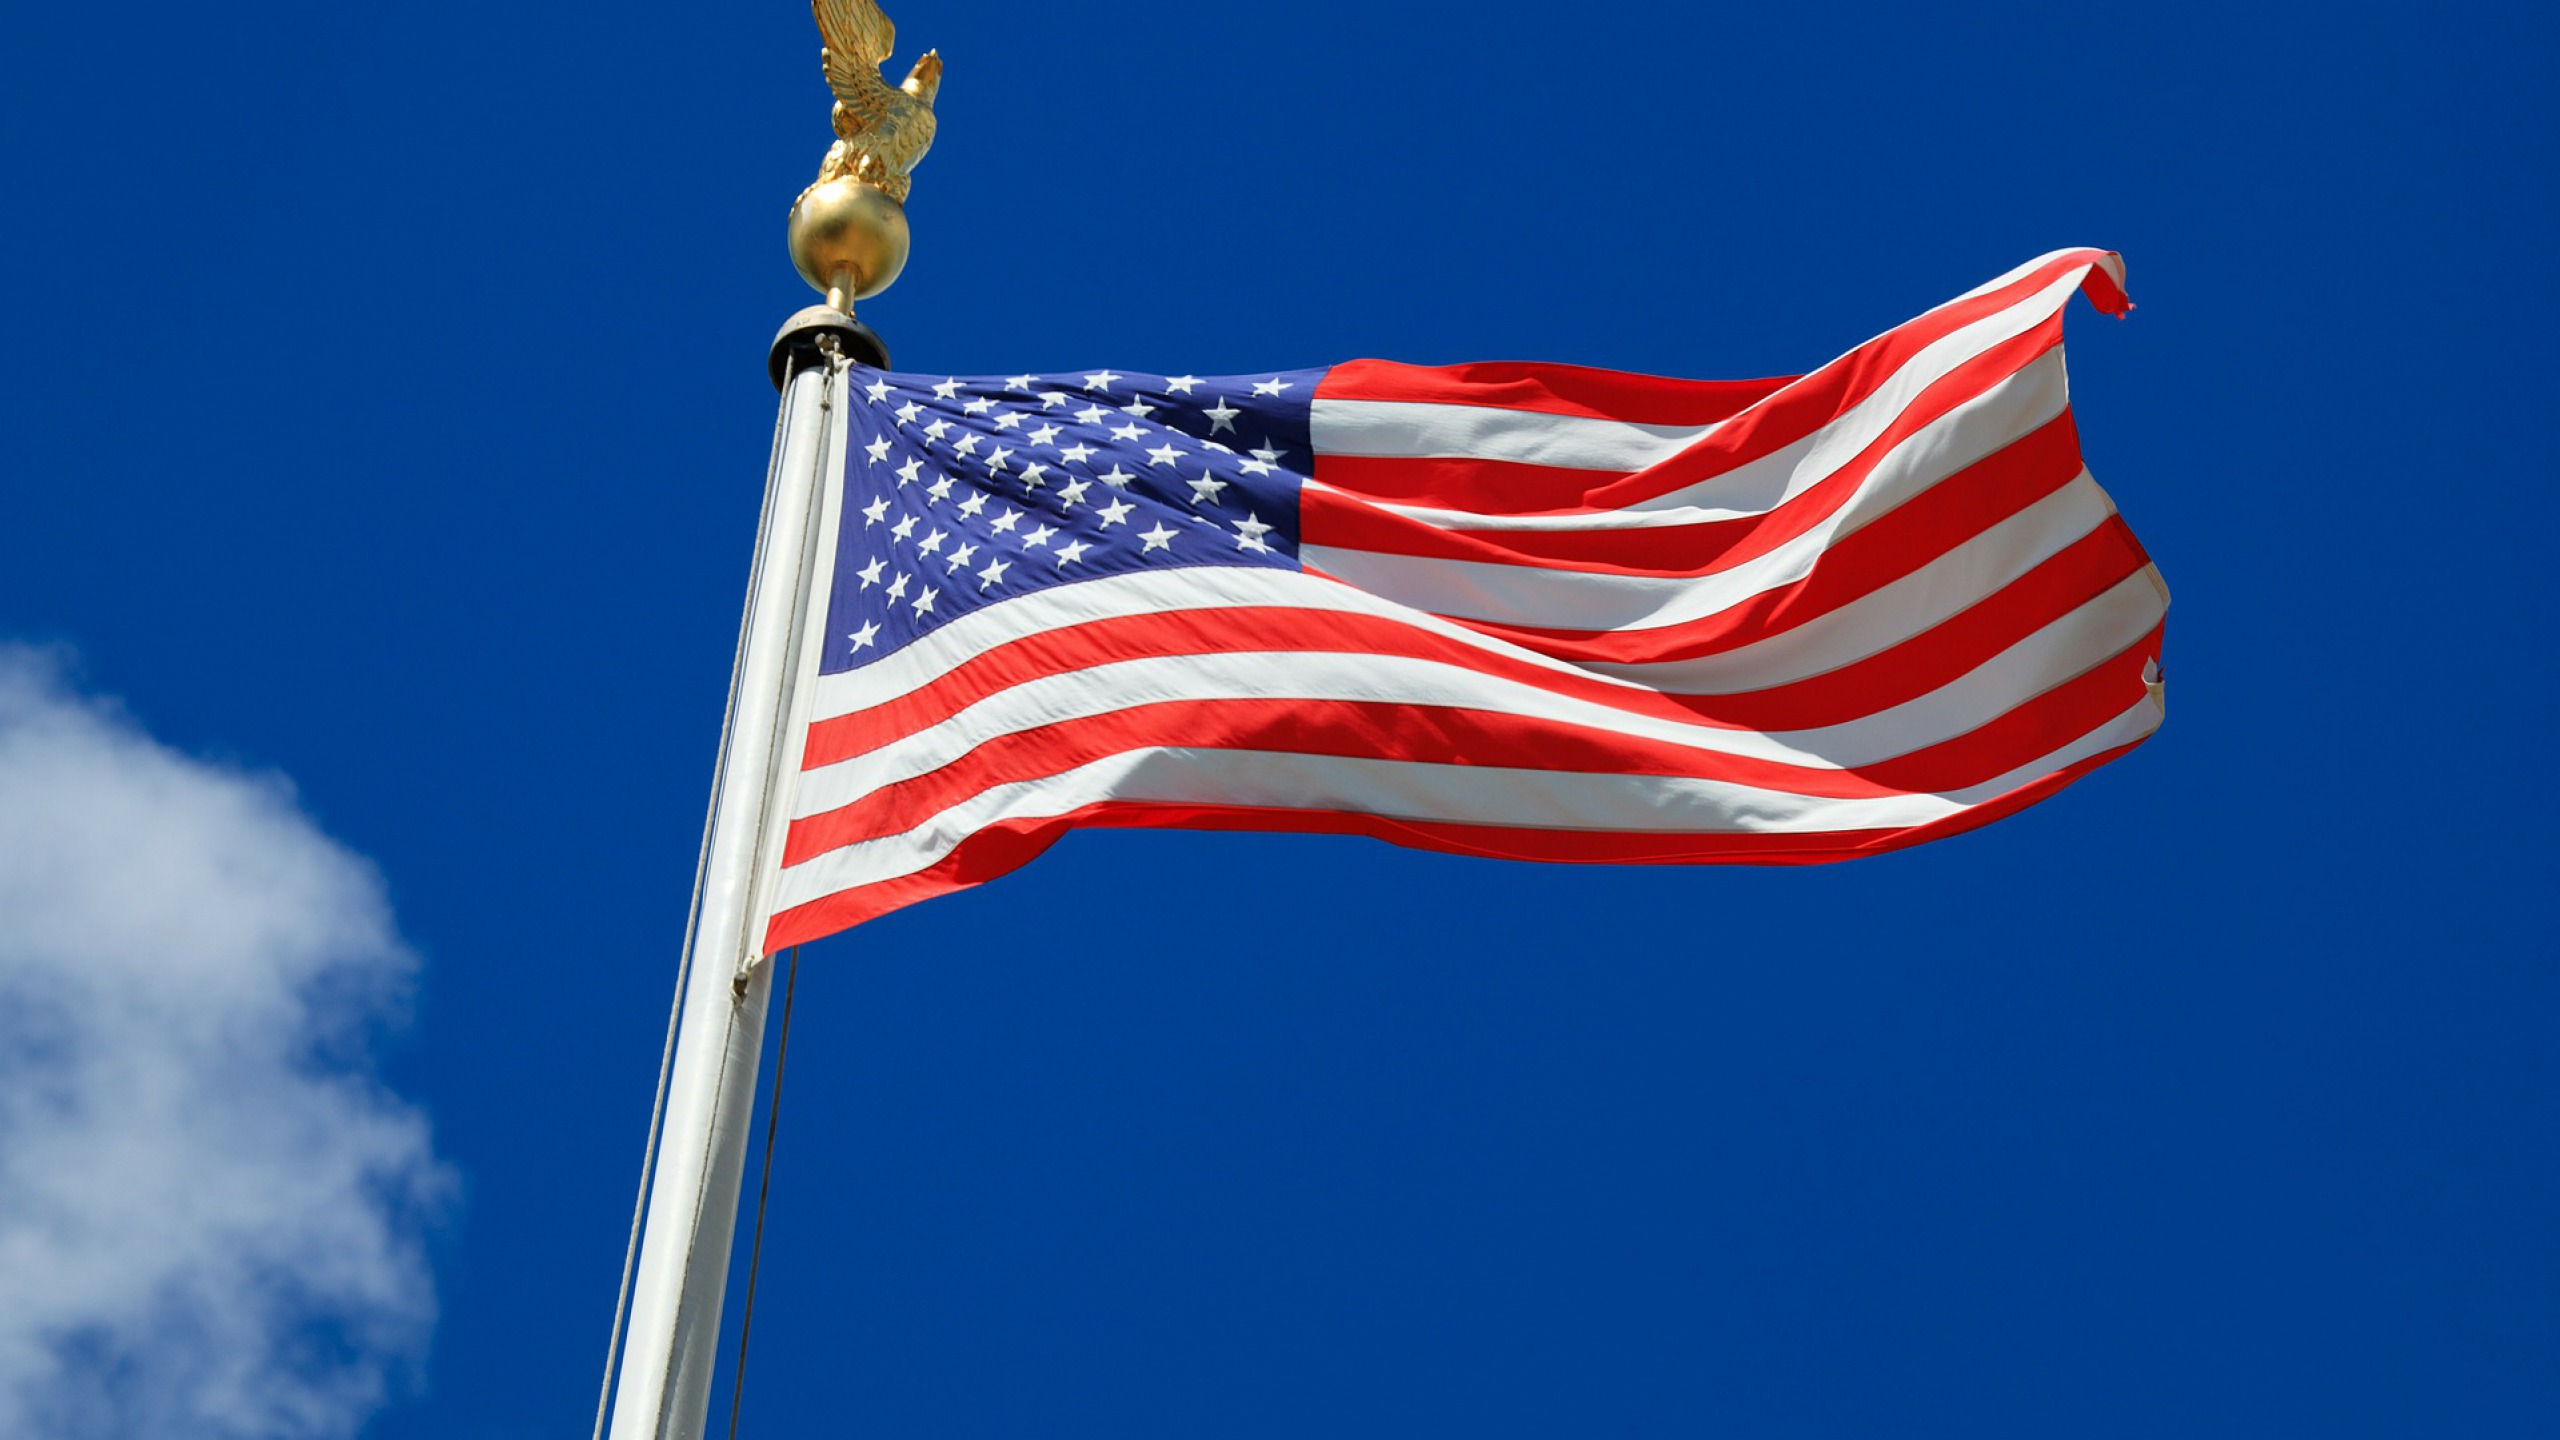 American Flag Wallpapers 2560x1440